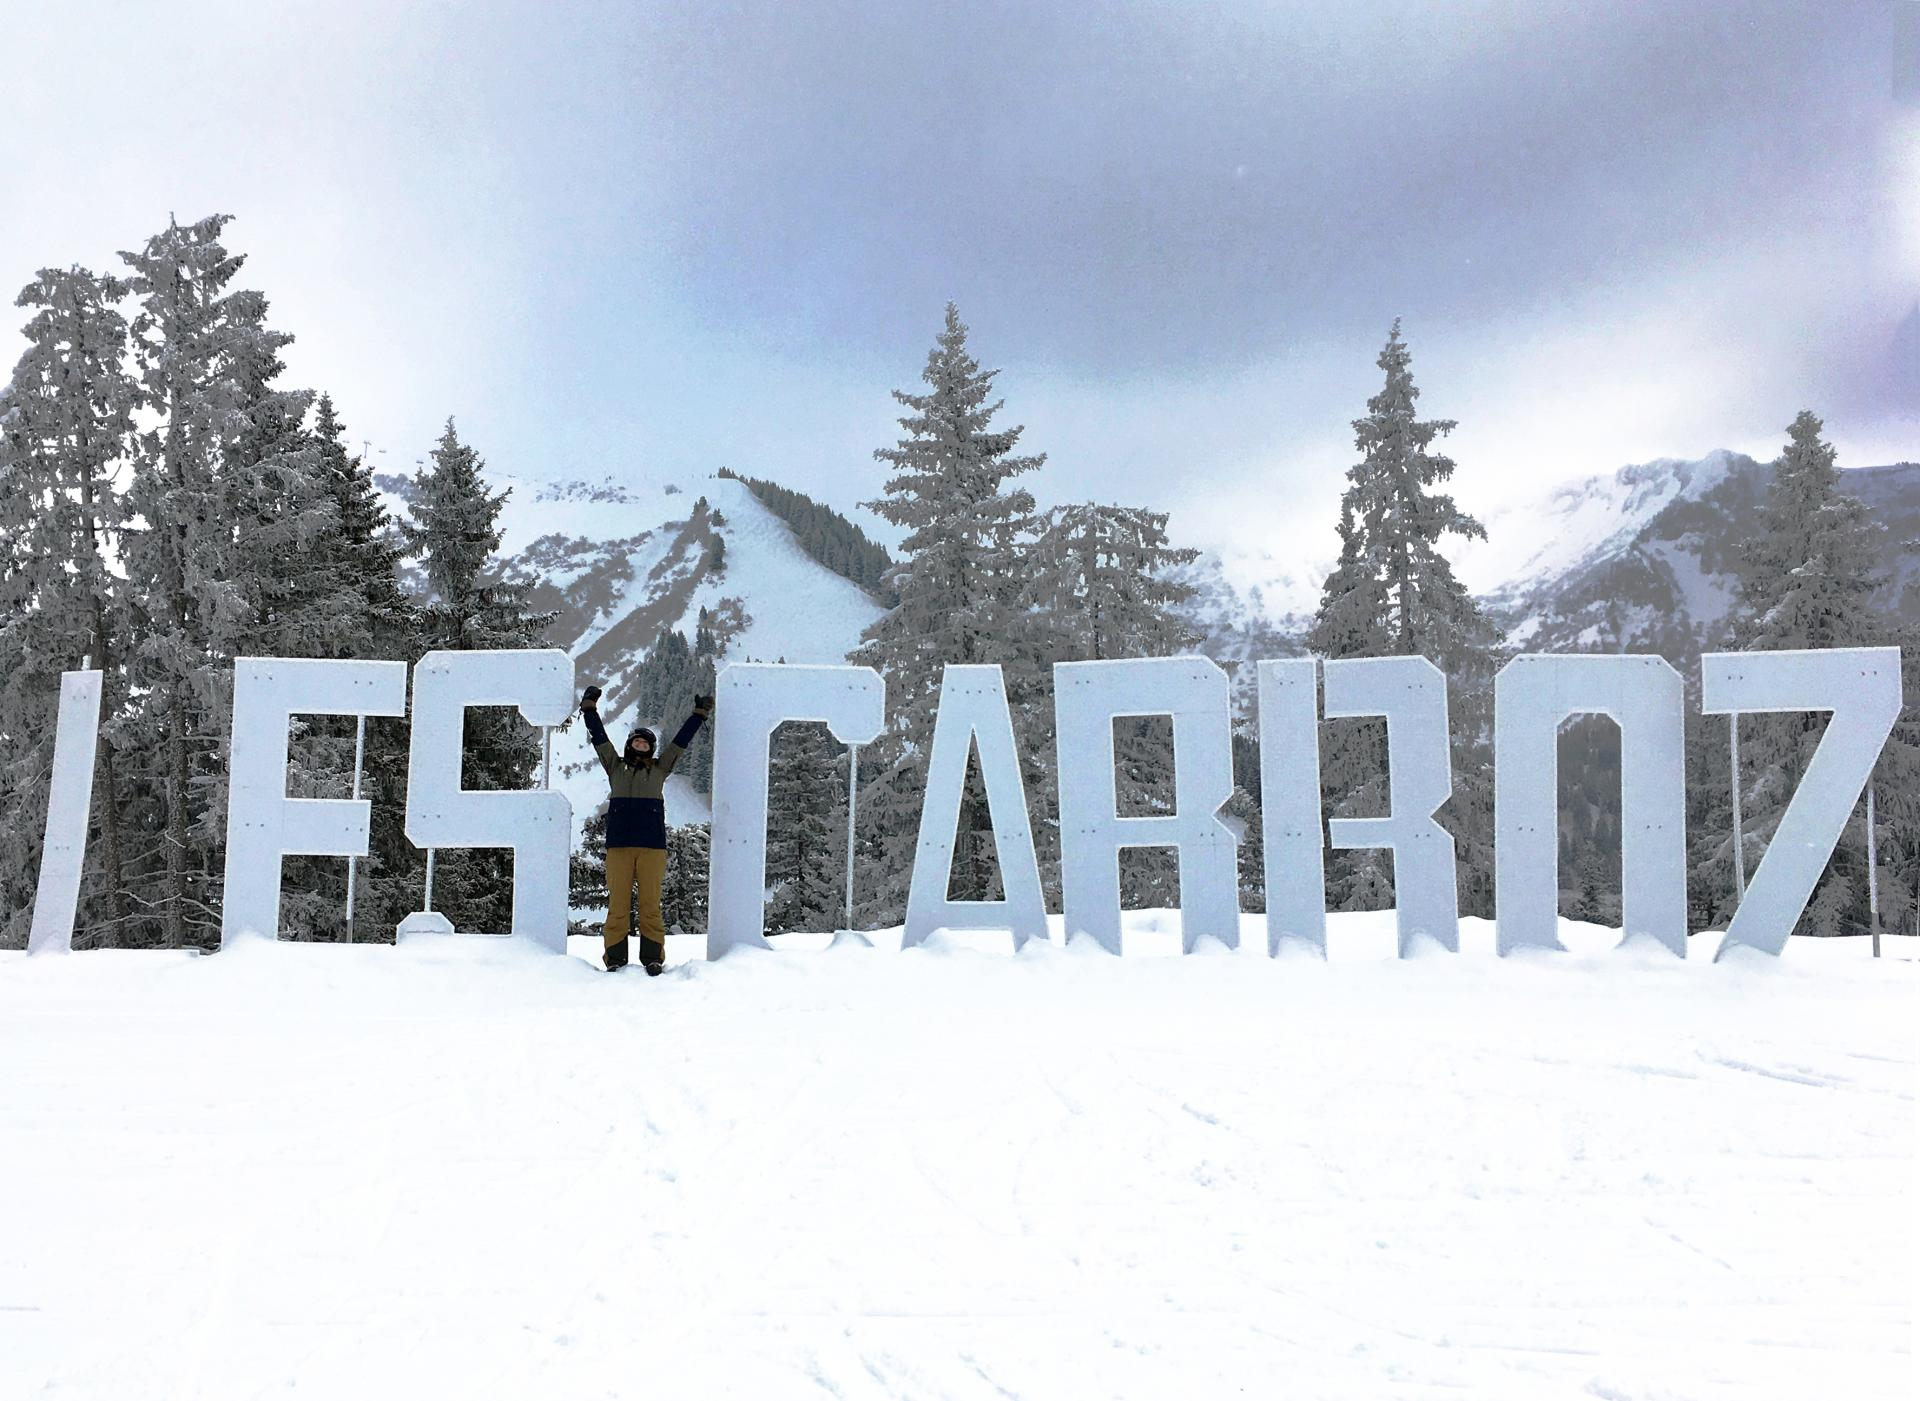 The girl's guide to skiing in Les Carroz, France